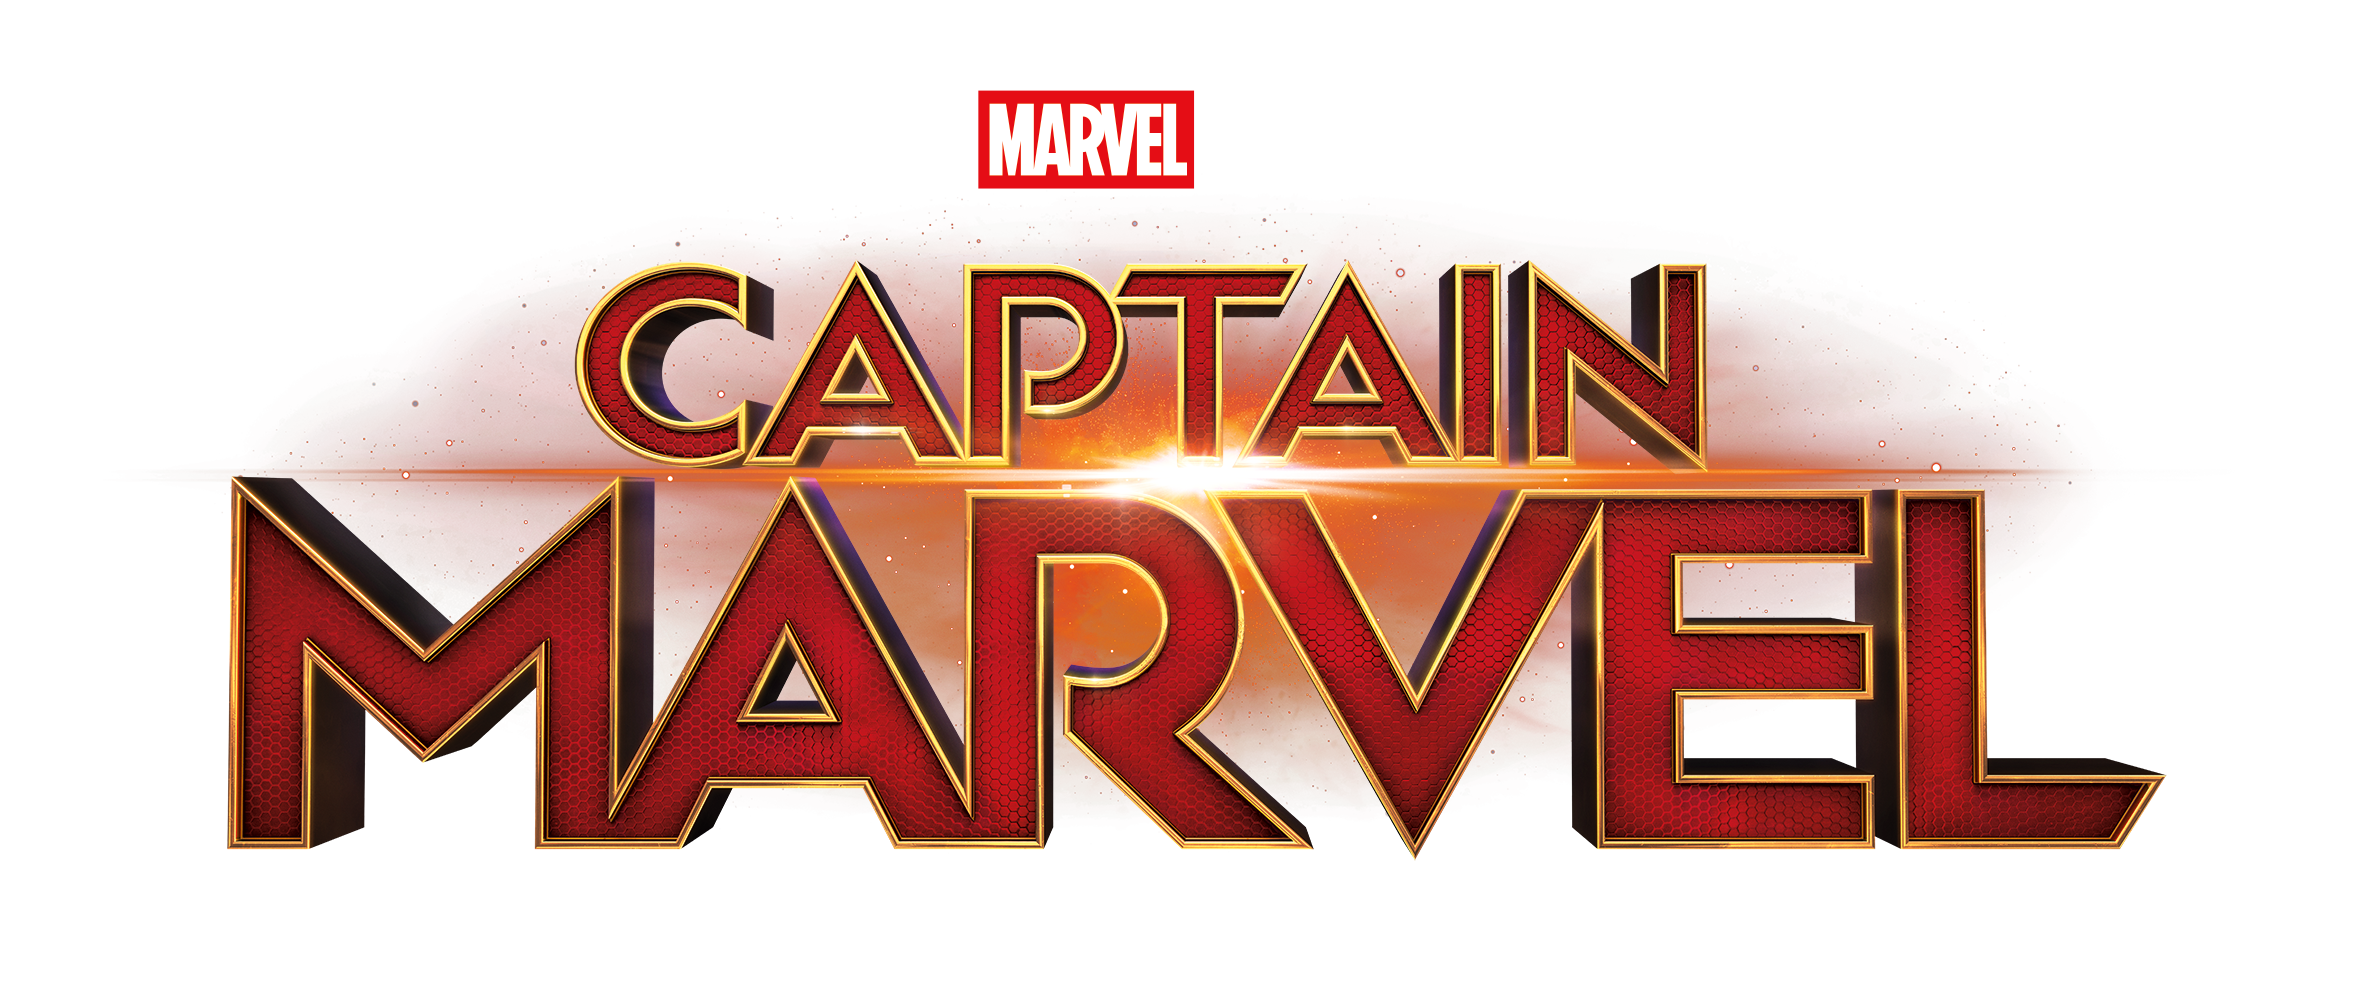 New official marvelstudios promotionalnew. Captain marvel logo png banner library library